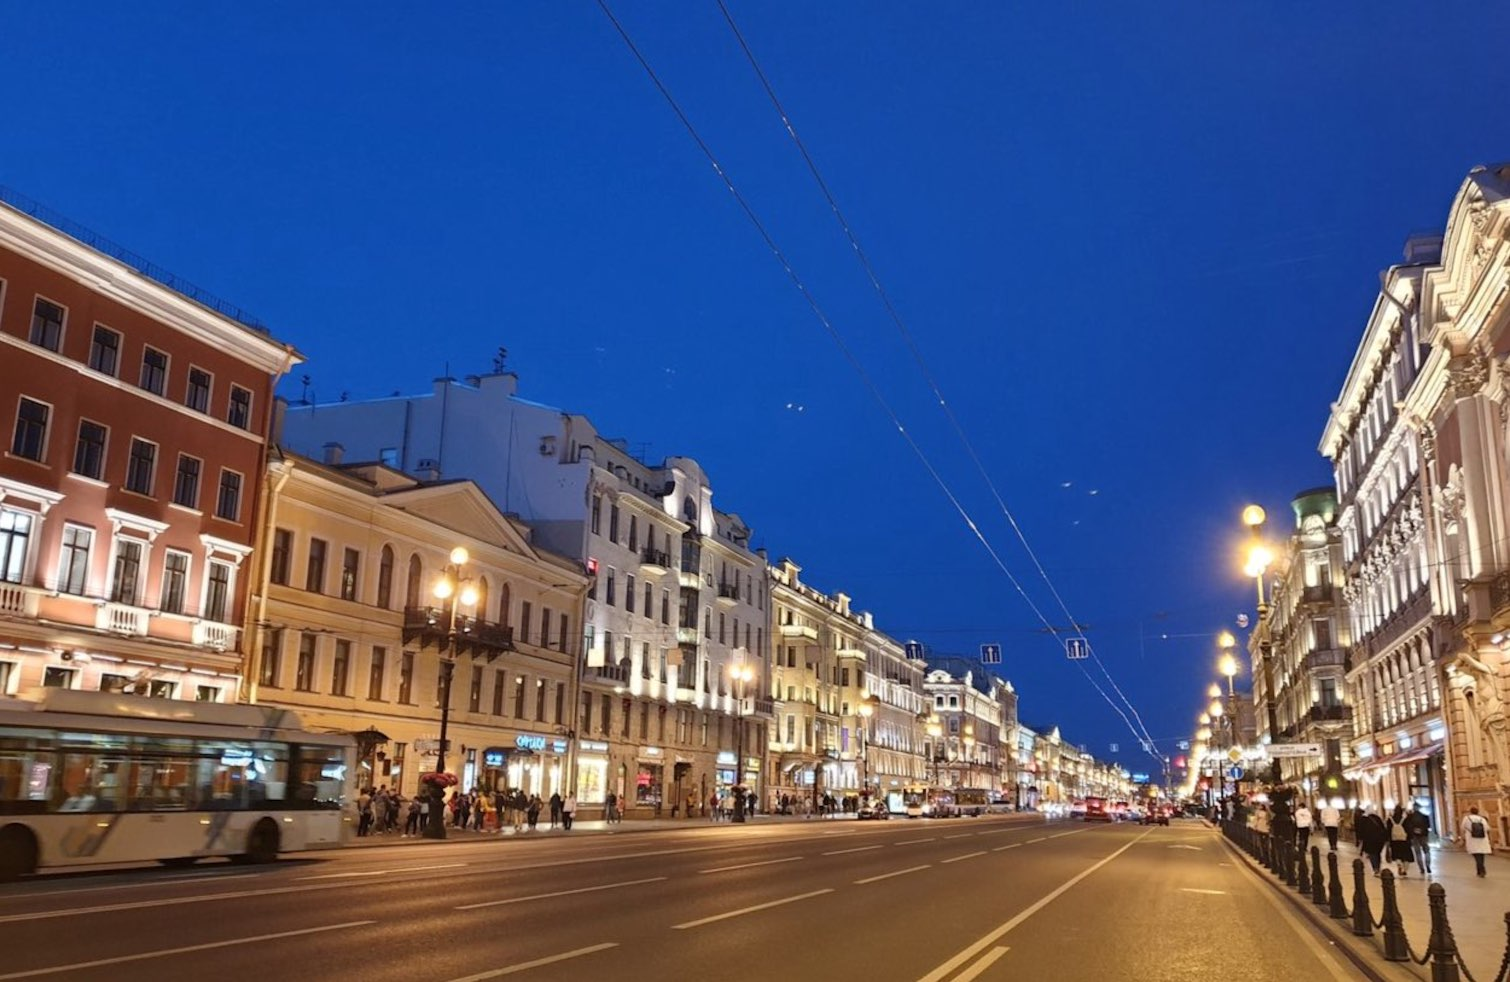 Nevsky Prospect Avenue in St Petersburg